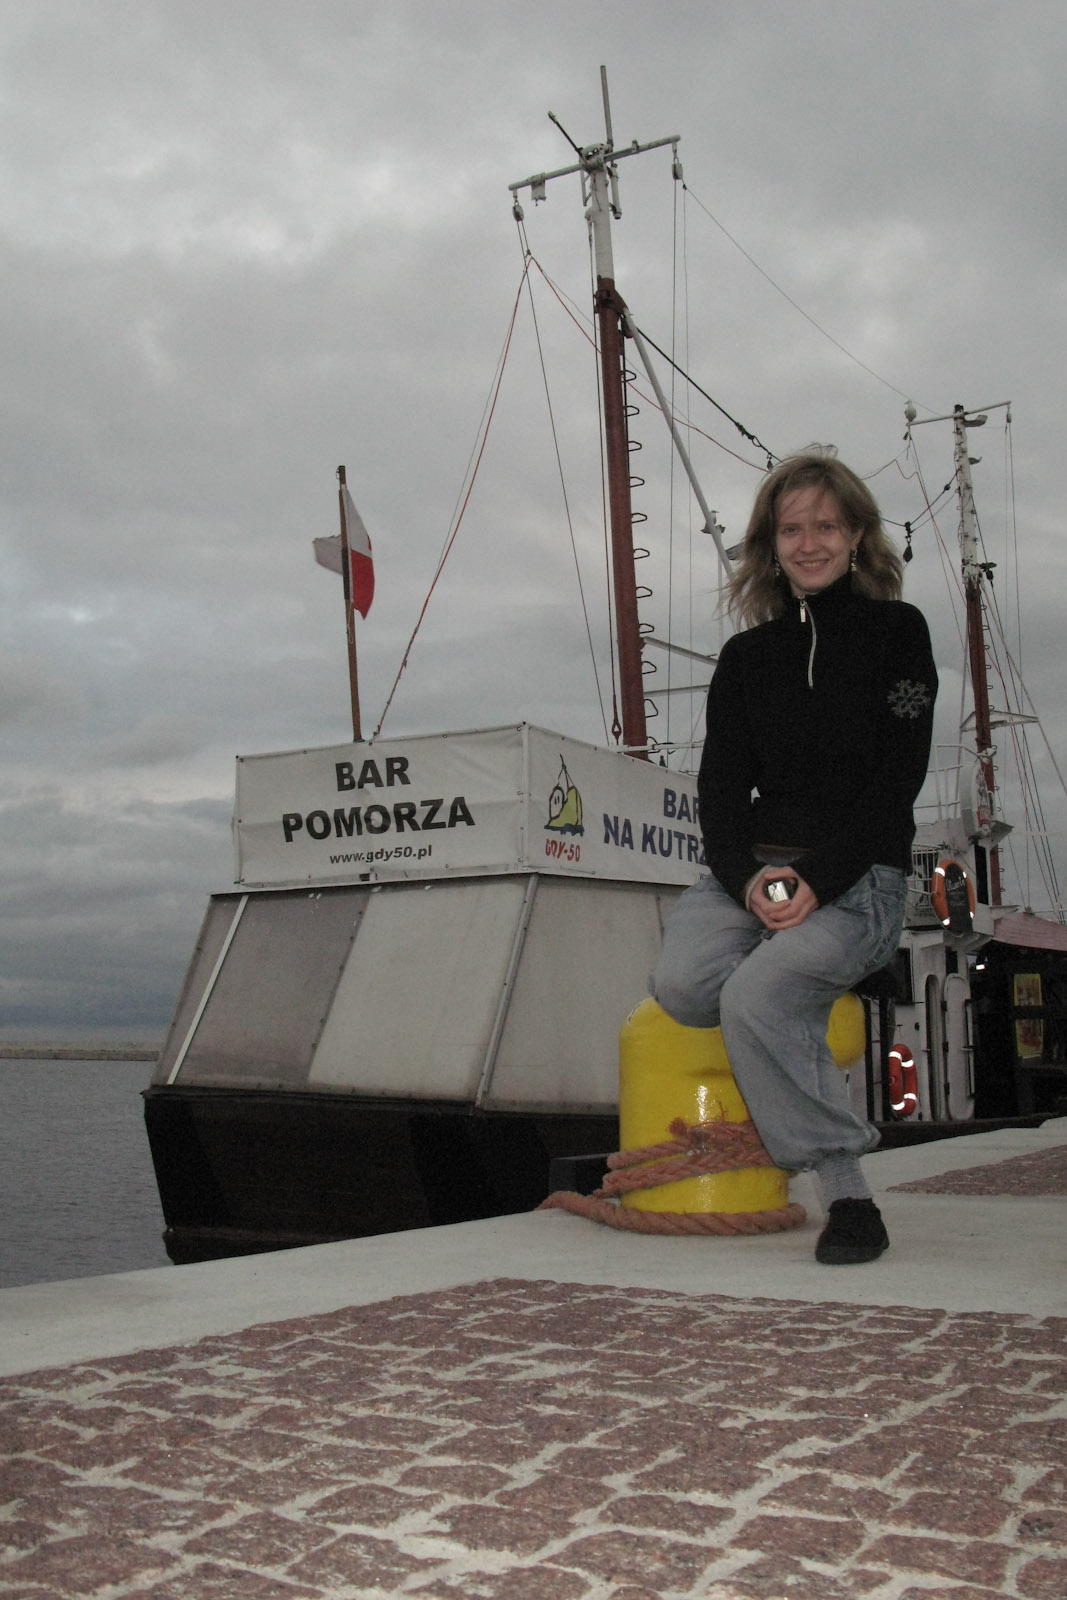 Hanne next to the Bar Pomorza (Bar of The Coast / Pomerania - parody ship moored next to Dar Pomorza (Gift of The Coast / Pomerania) former sail school ship of Polish Marine Academy)